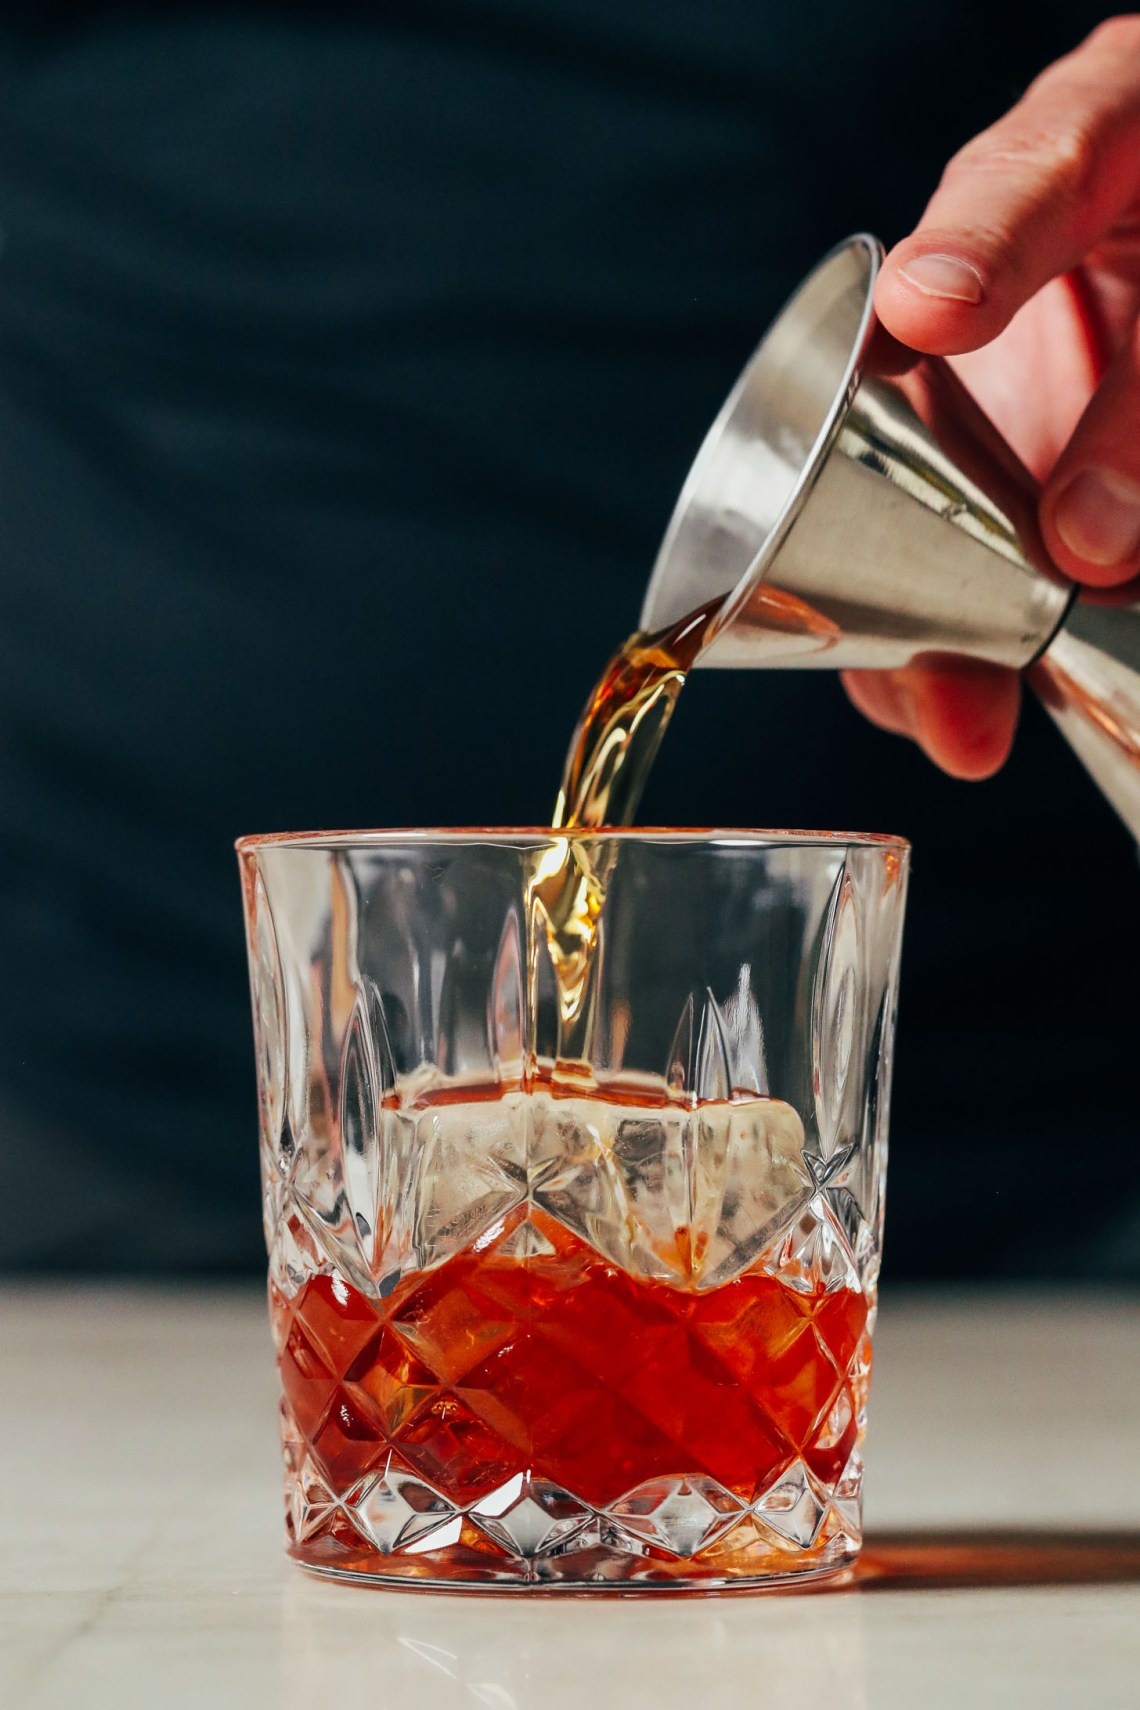 Pouring bourbon over a clear ice cube in a glass